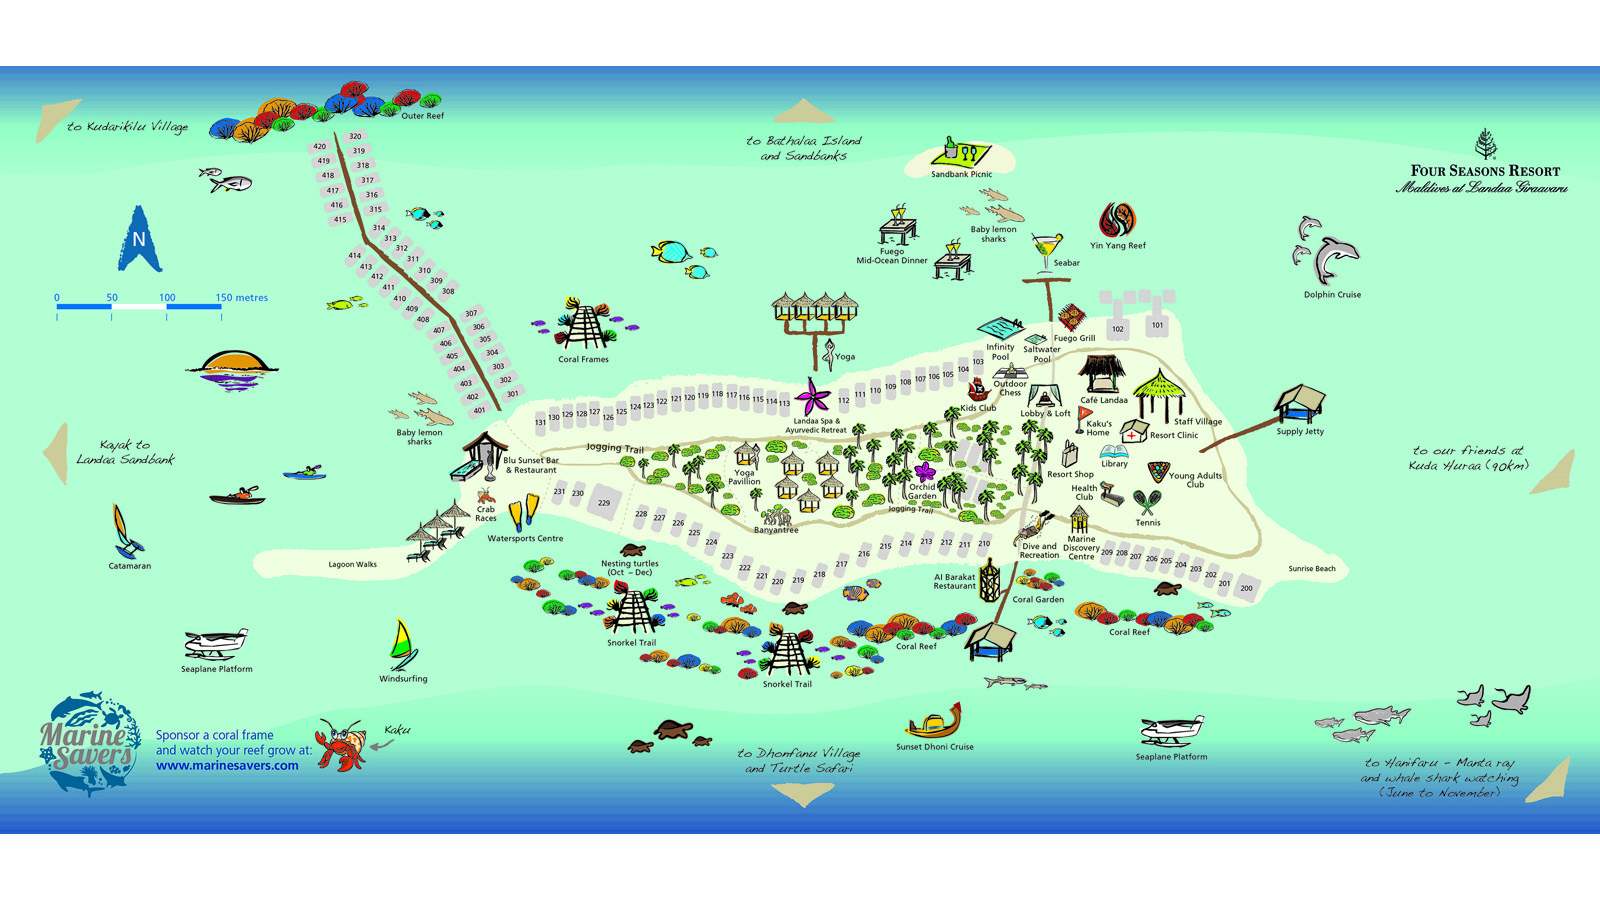 Four Seasons Maldives Landaa Giraavaru Resort Map